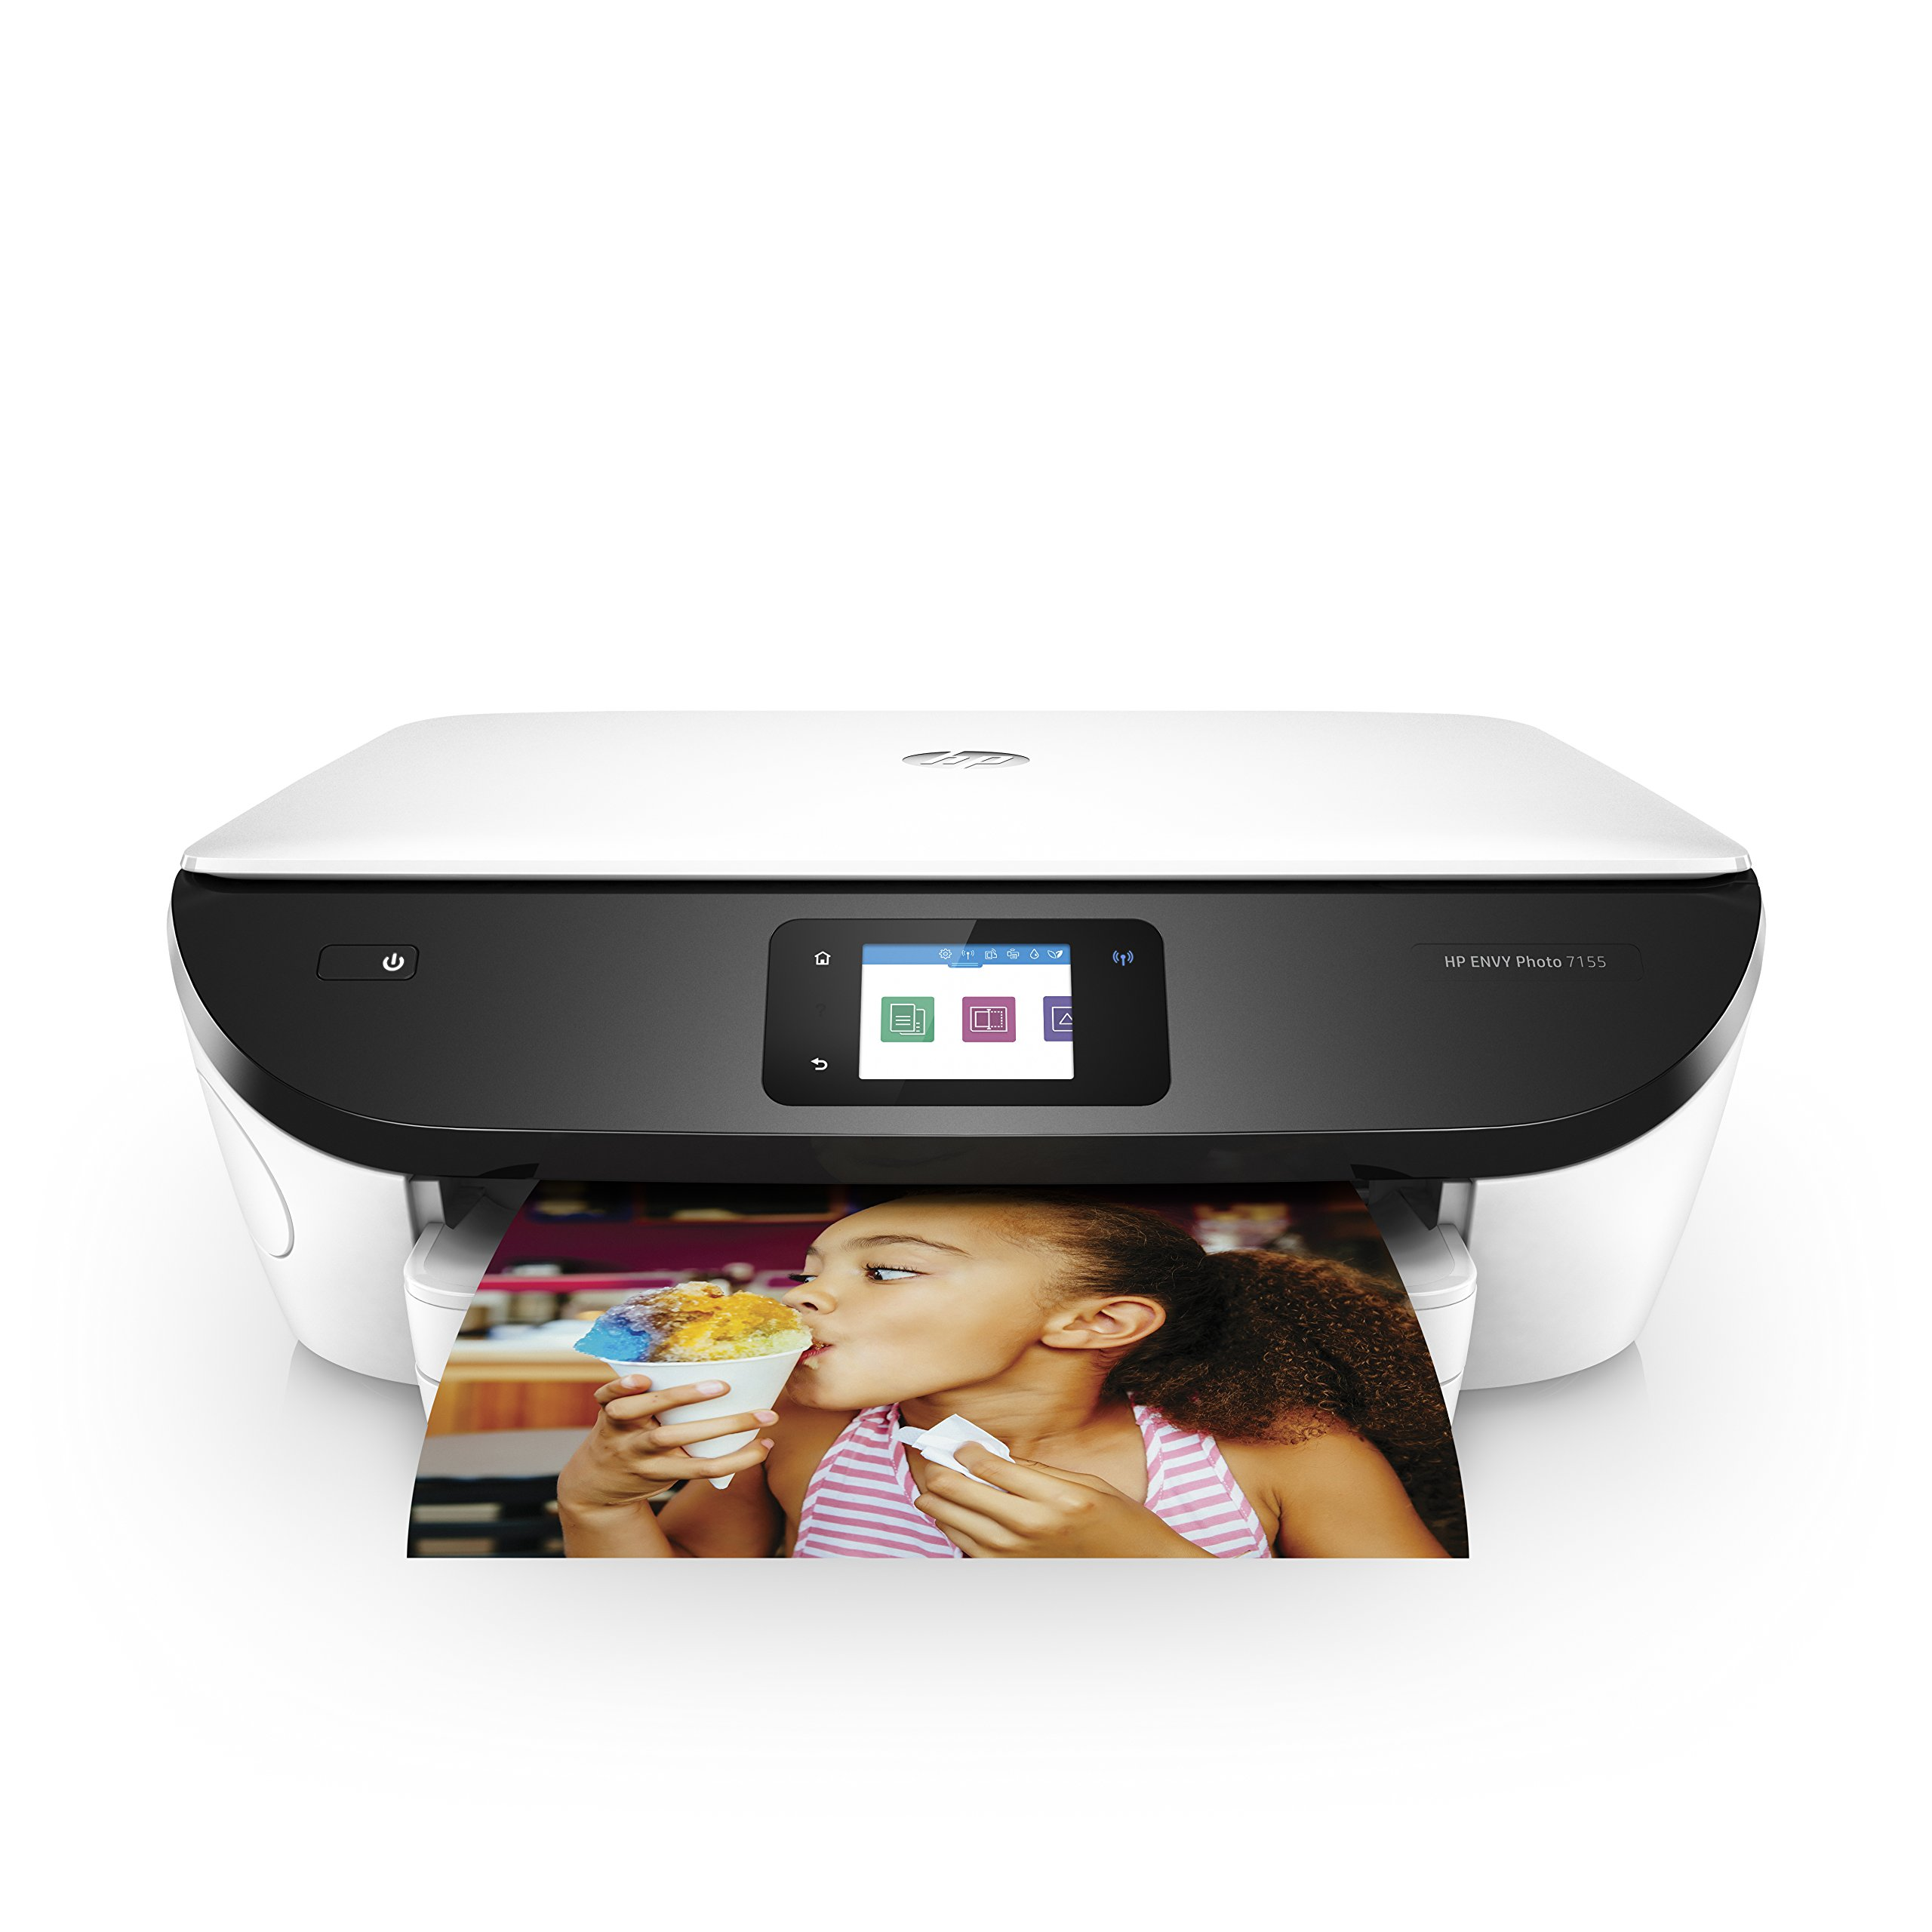 HP ENVY Photo 7155 All in One Photo Printer with Wireless Printing, Instant Ink ready - White